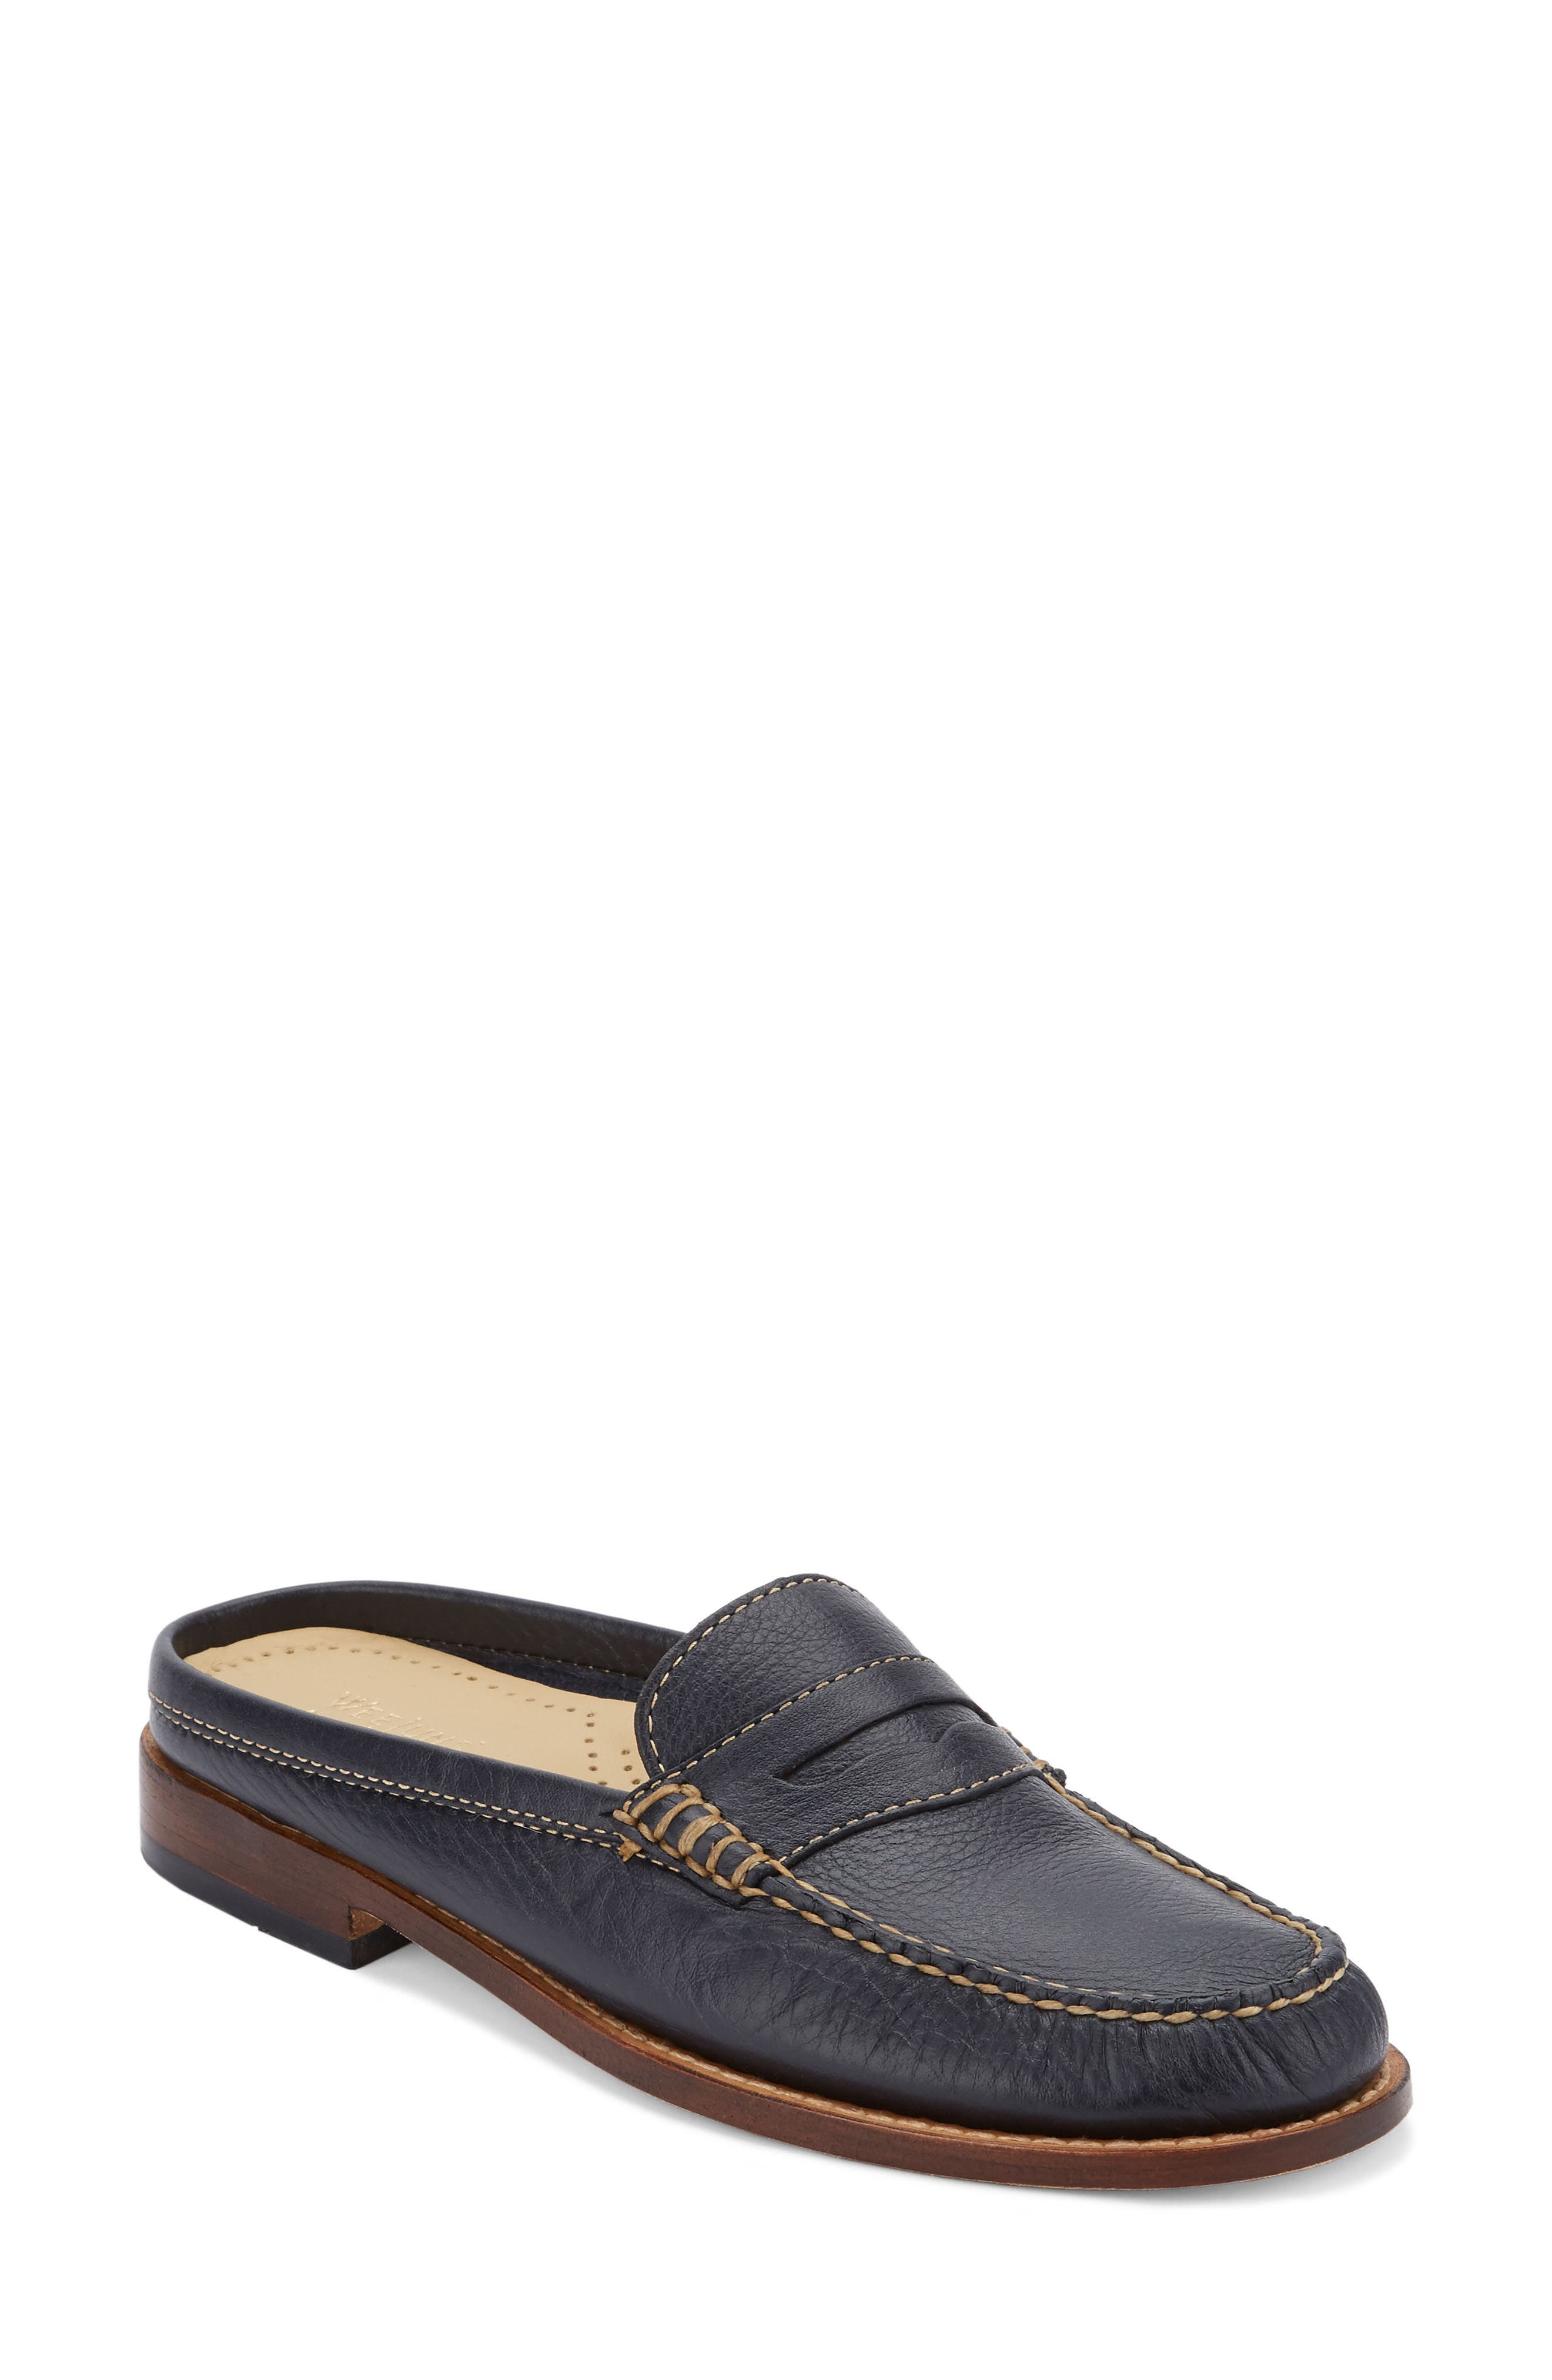 Wynn Loafer Mule,                             Main thumbnail 6, color,